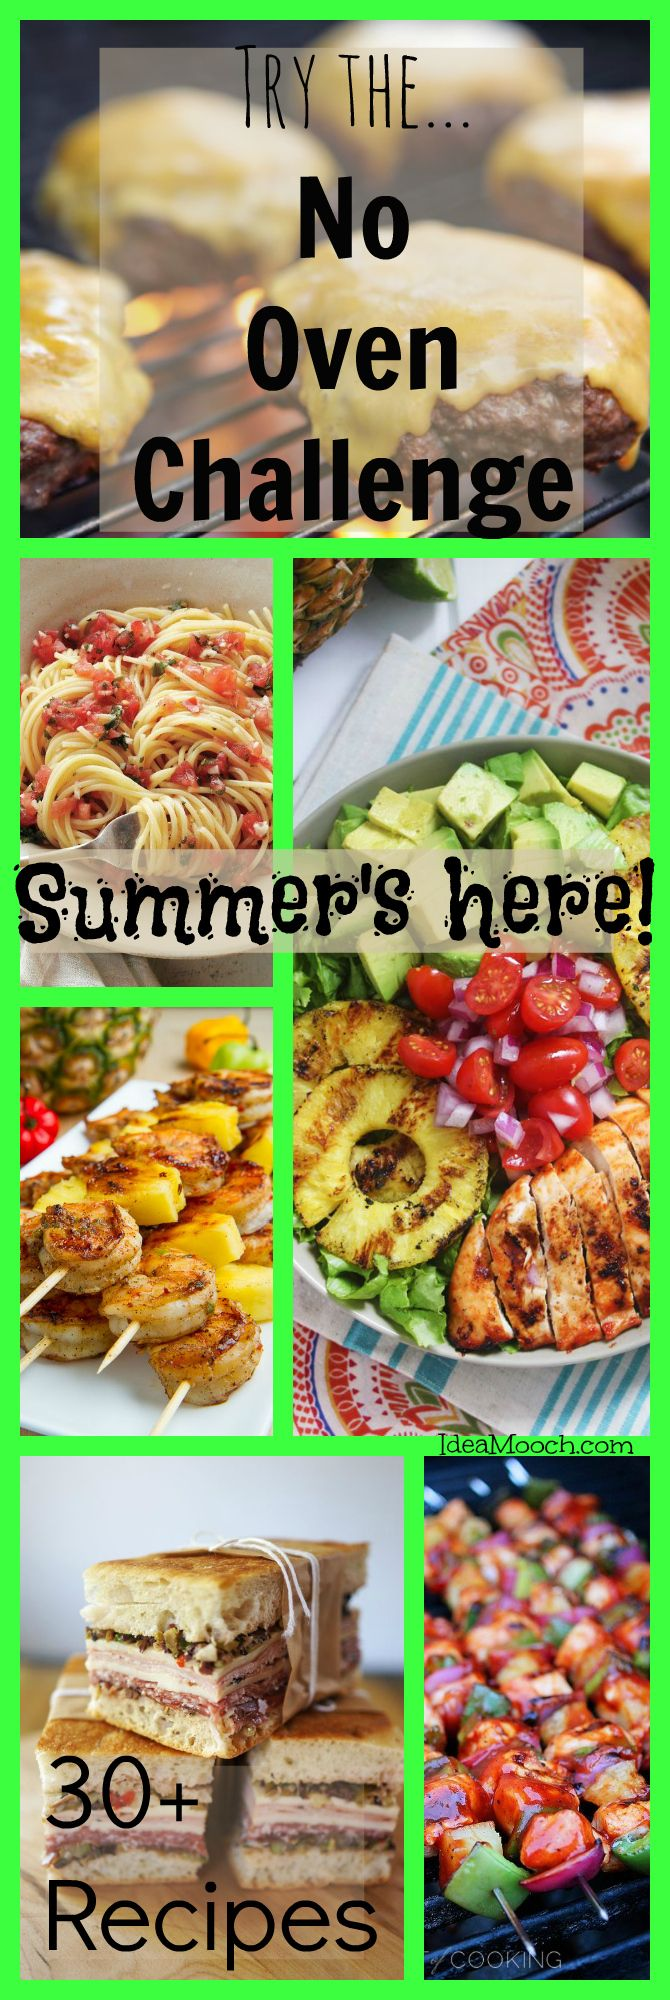 #Summer is almost here! Here's some recipes that will minimize kitchen time and won't turn your house into a sauna -  IdeaMooch.com